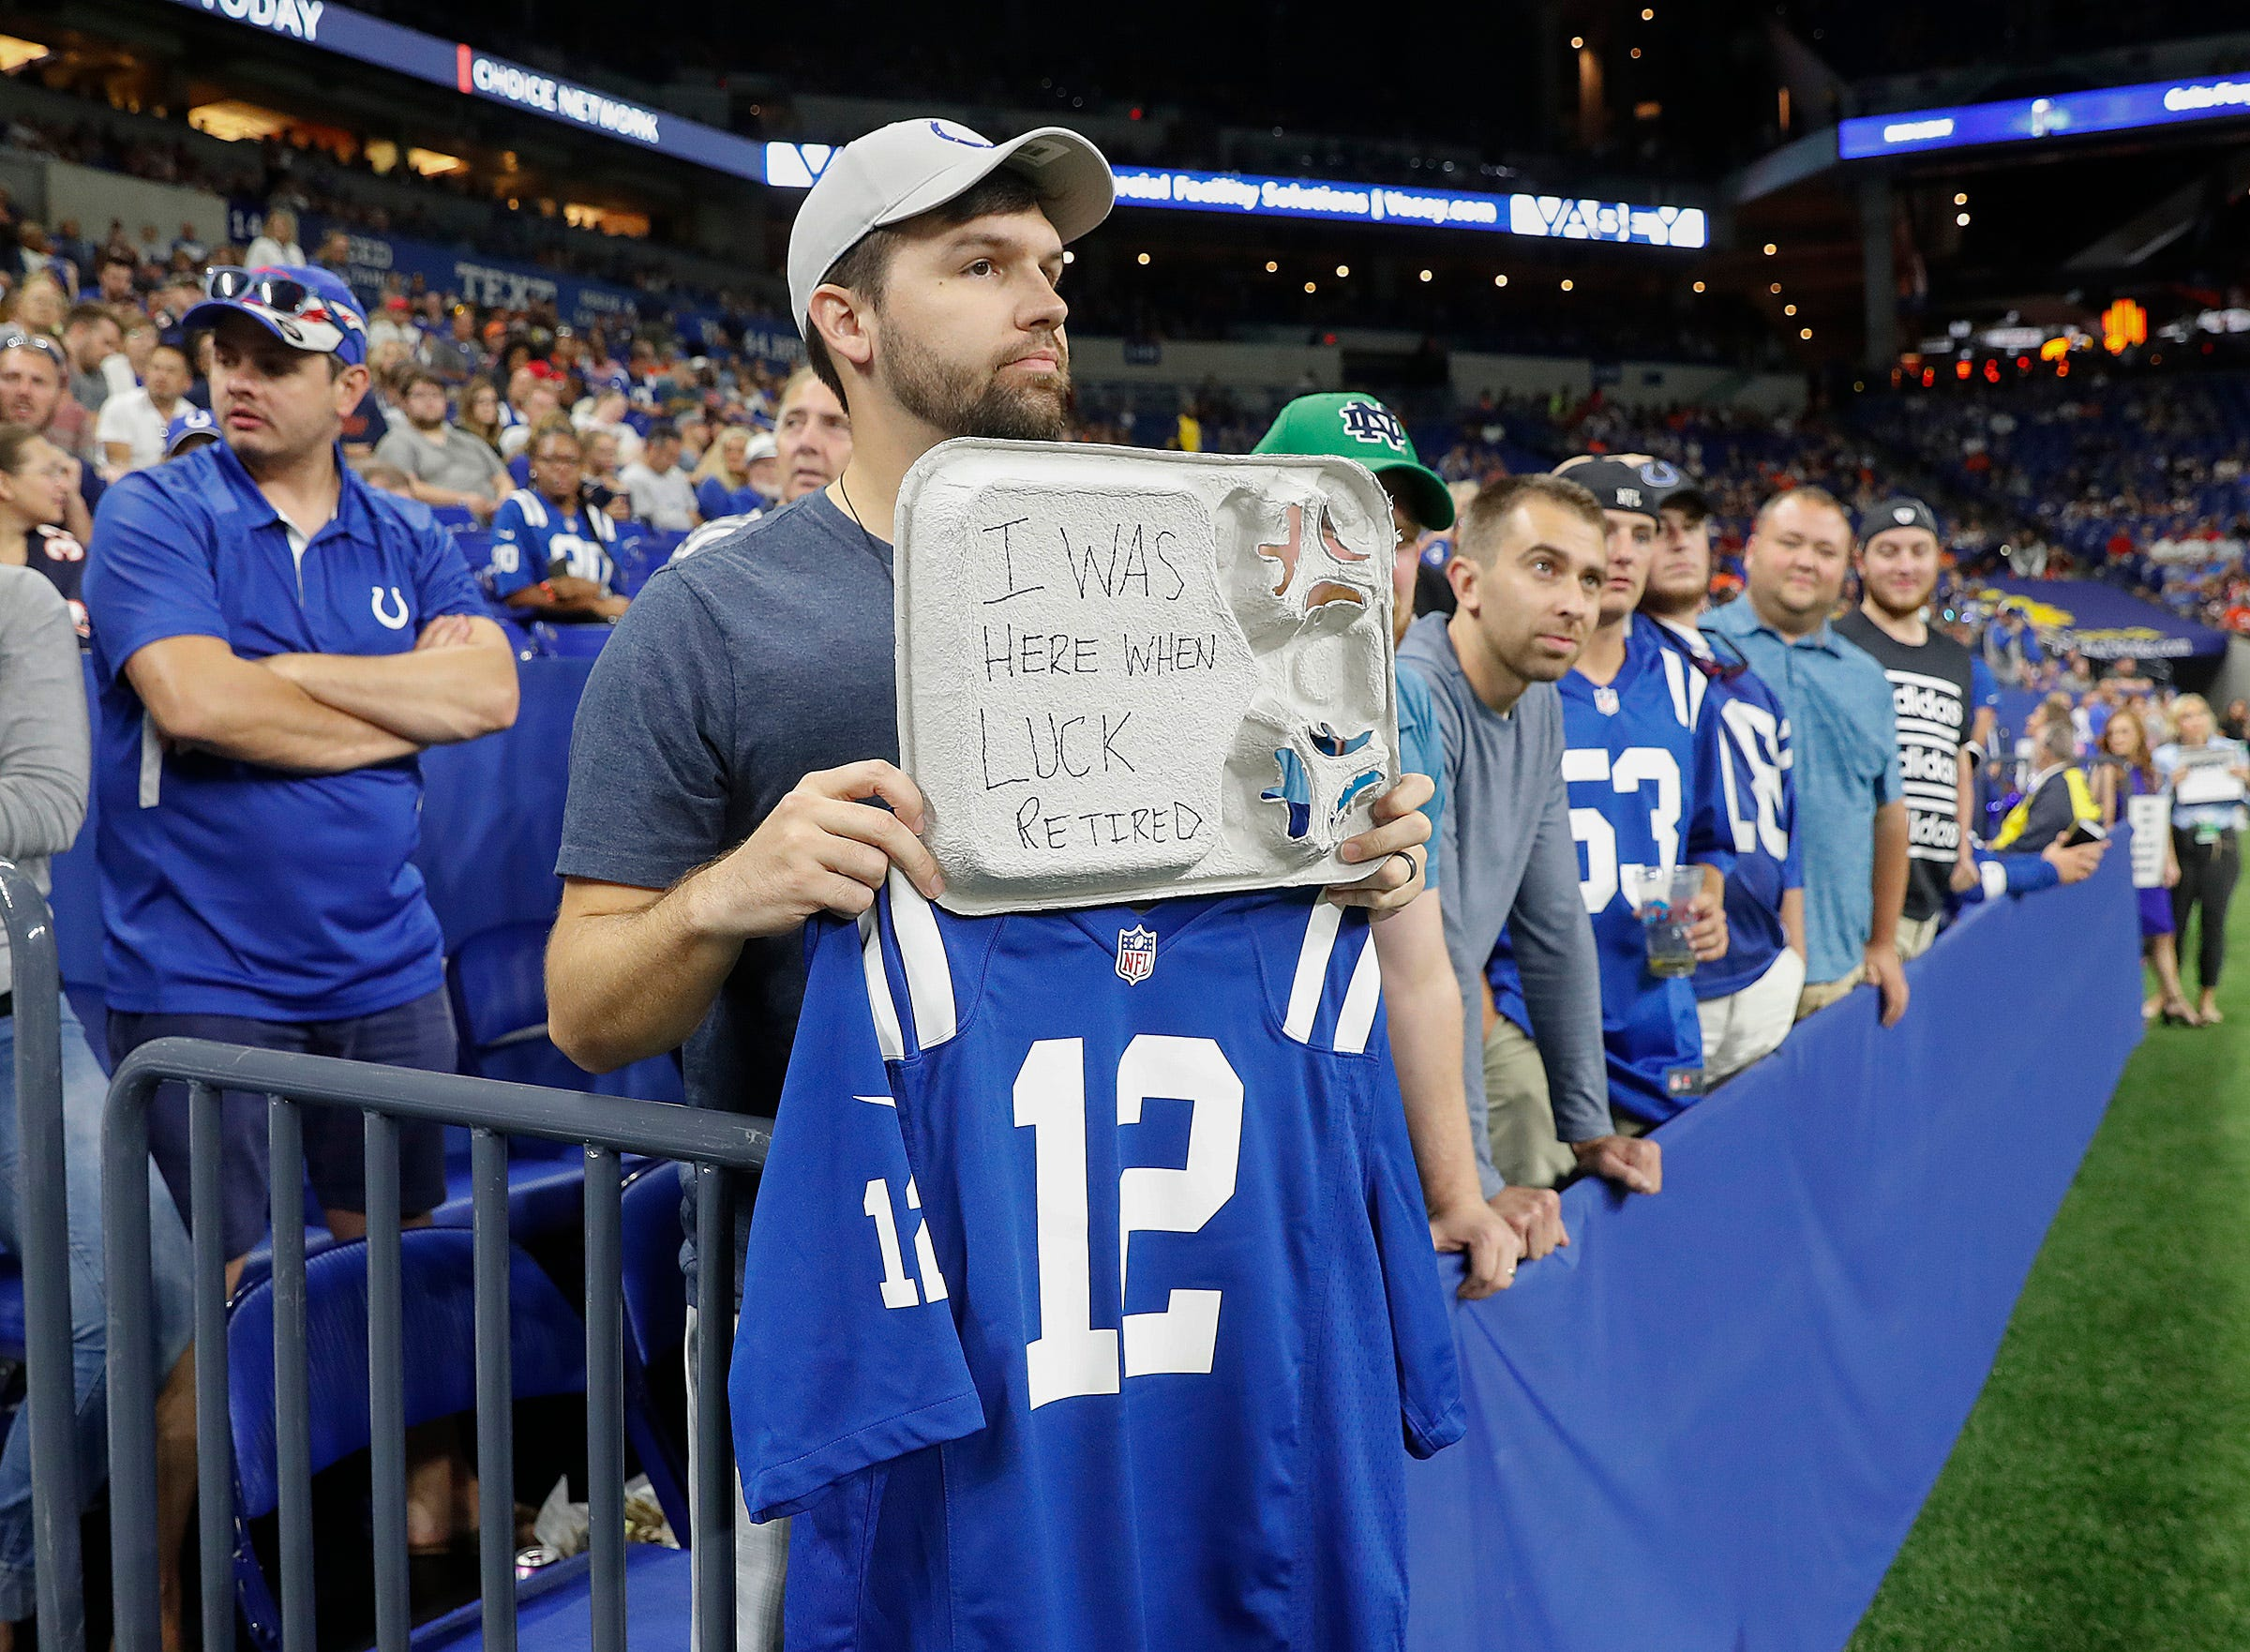 This guy says he  broke the Andrew Luck retirement news to Indianapolis Colts players